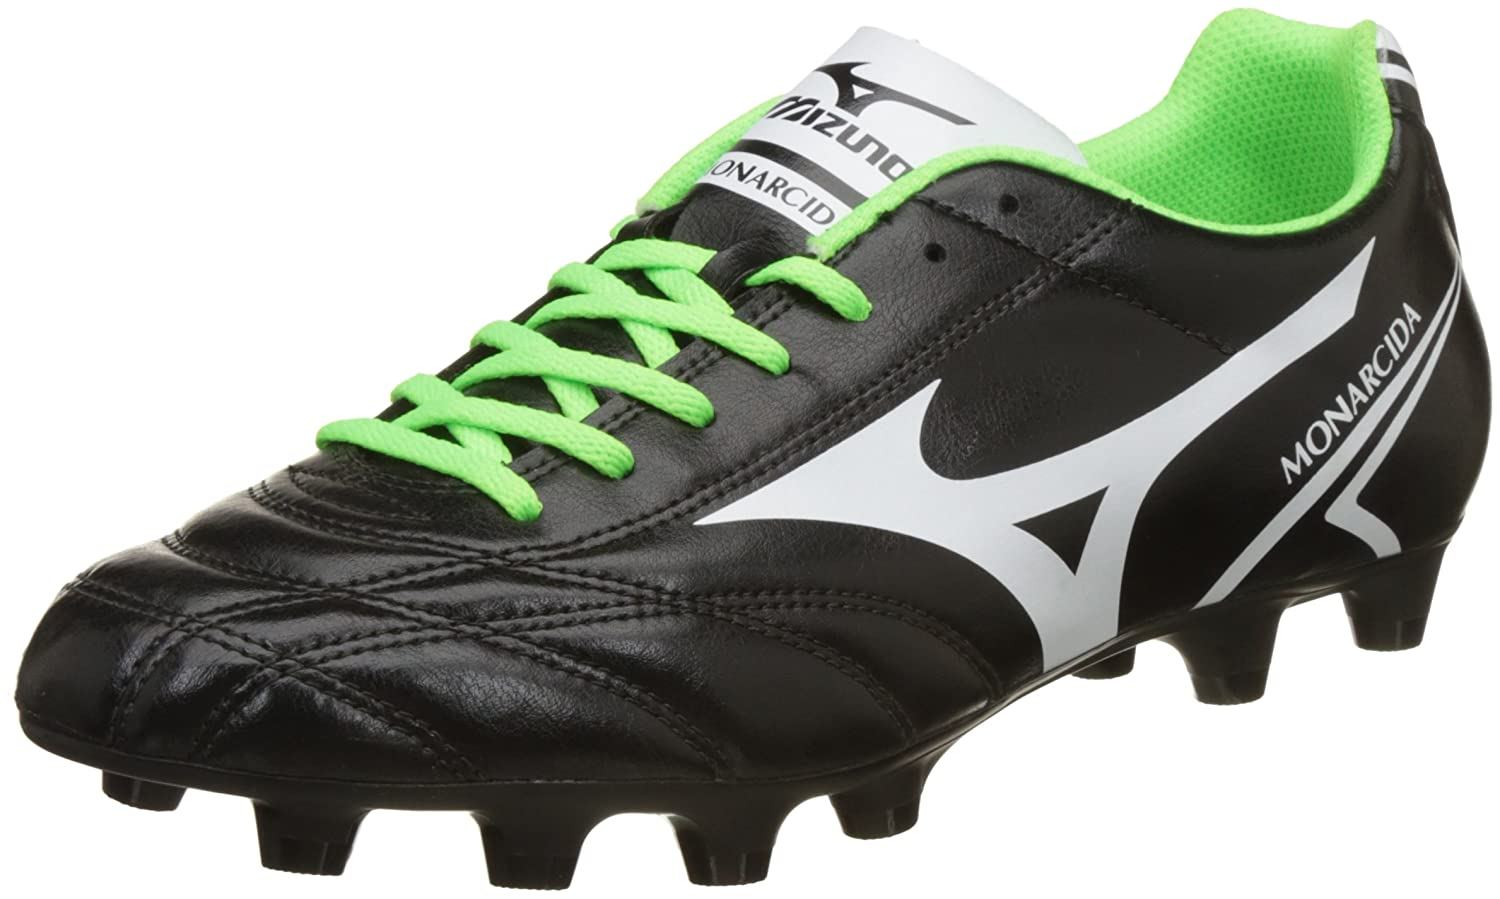 35b6637e5 Mizuno Men s Monarcida Md Football Boots  Buy Online at Low Prices in India  - Amazon.in